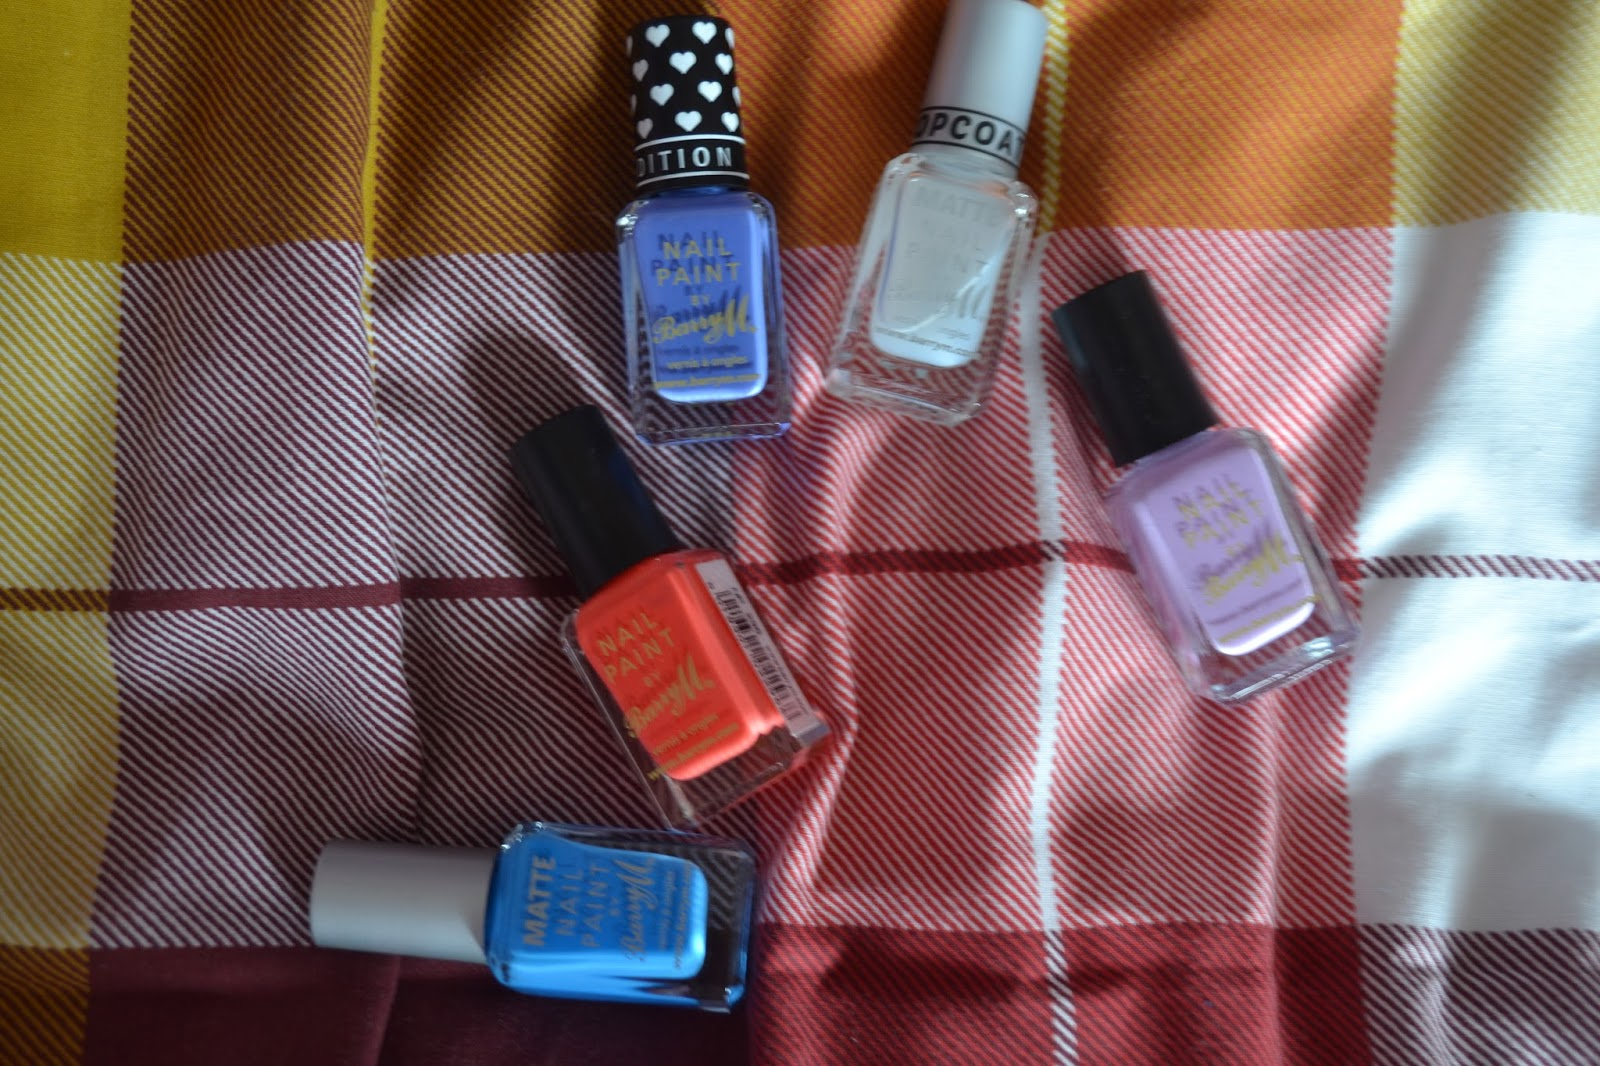 5 Barry M nail varnishes. Shades: matte topcoat, bikini blue, malibui, berry ice cream and and pink flamingo